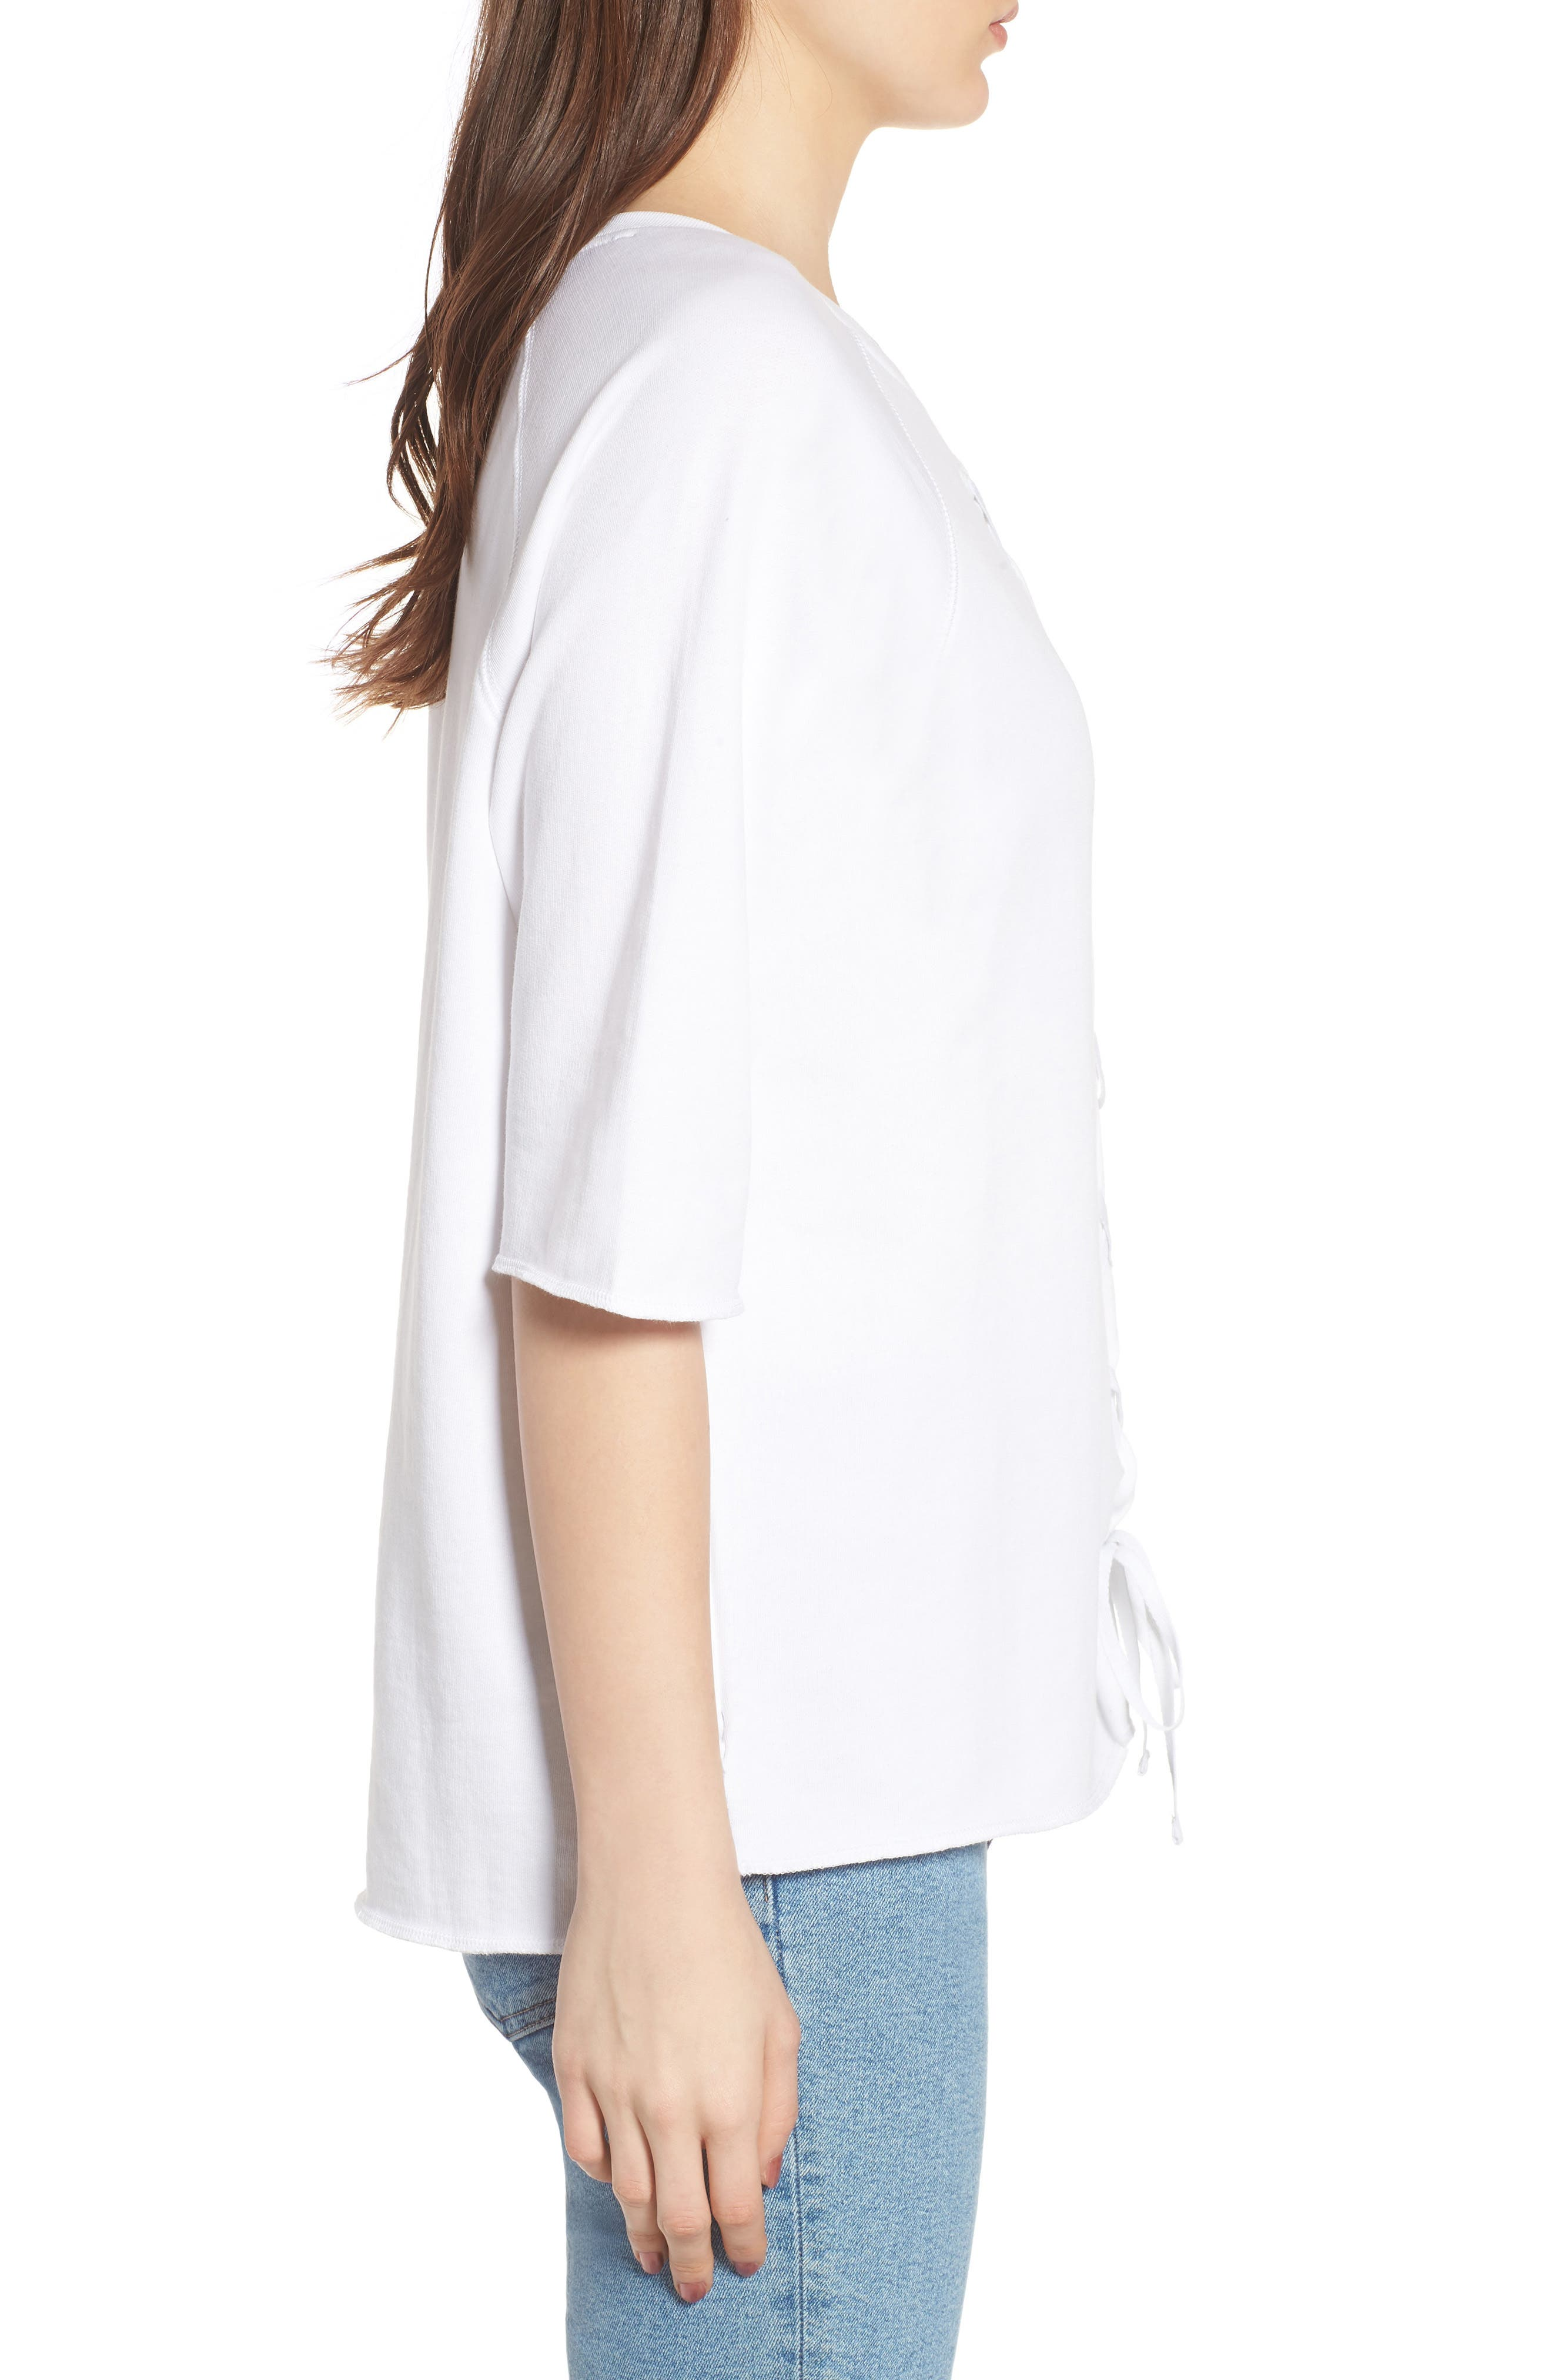 Julie - Vertical Eyelets Terry Top,                             Alternate thumbnail 3, color,                             White